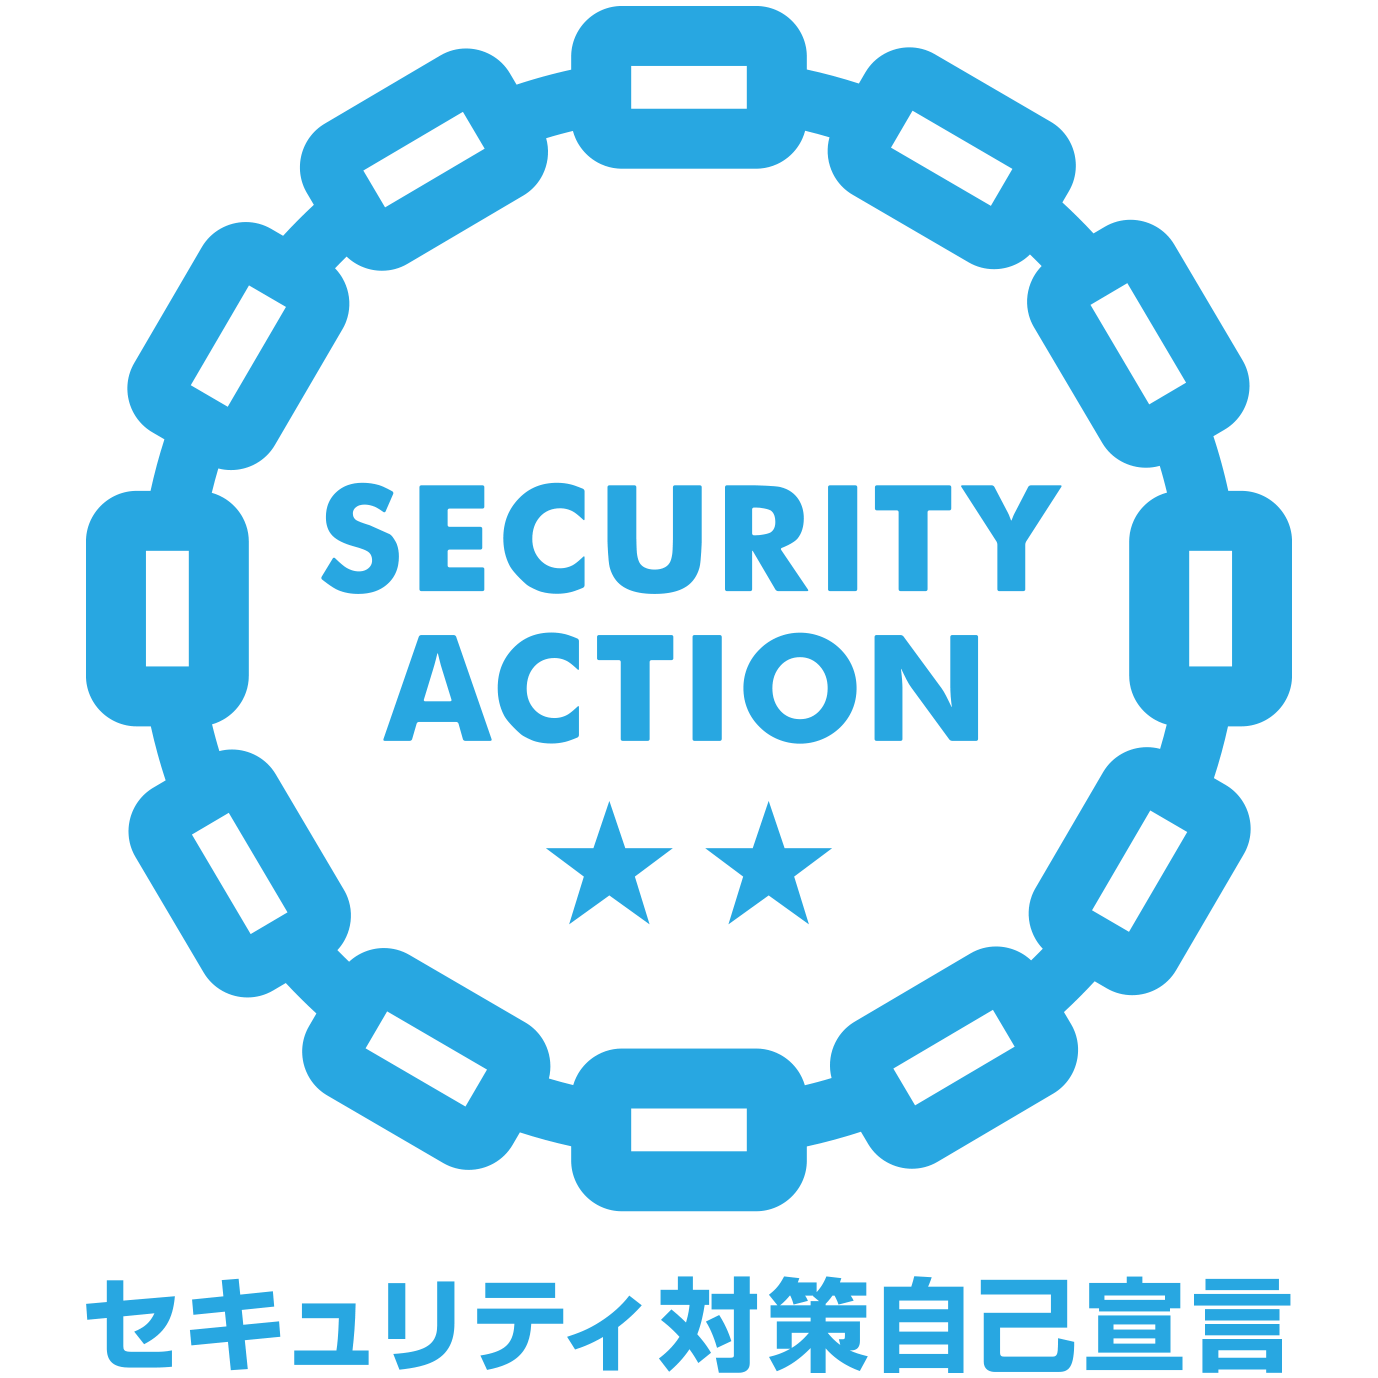 SECURITY ACTION自己宣言二つ星